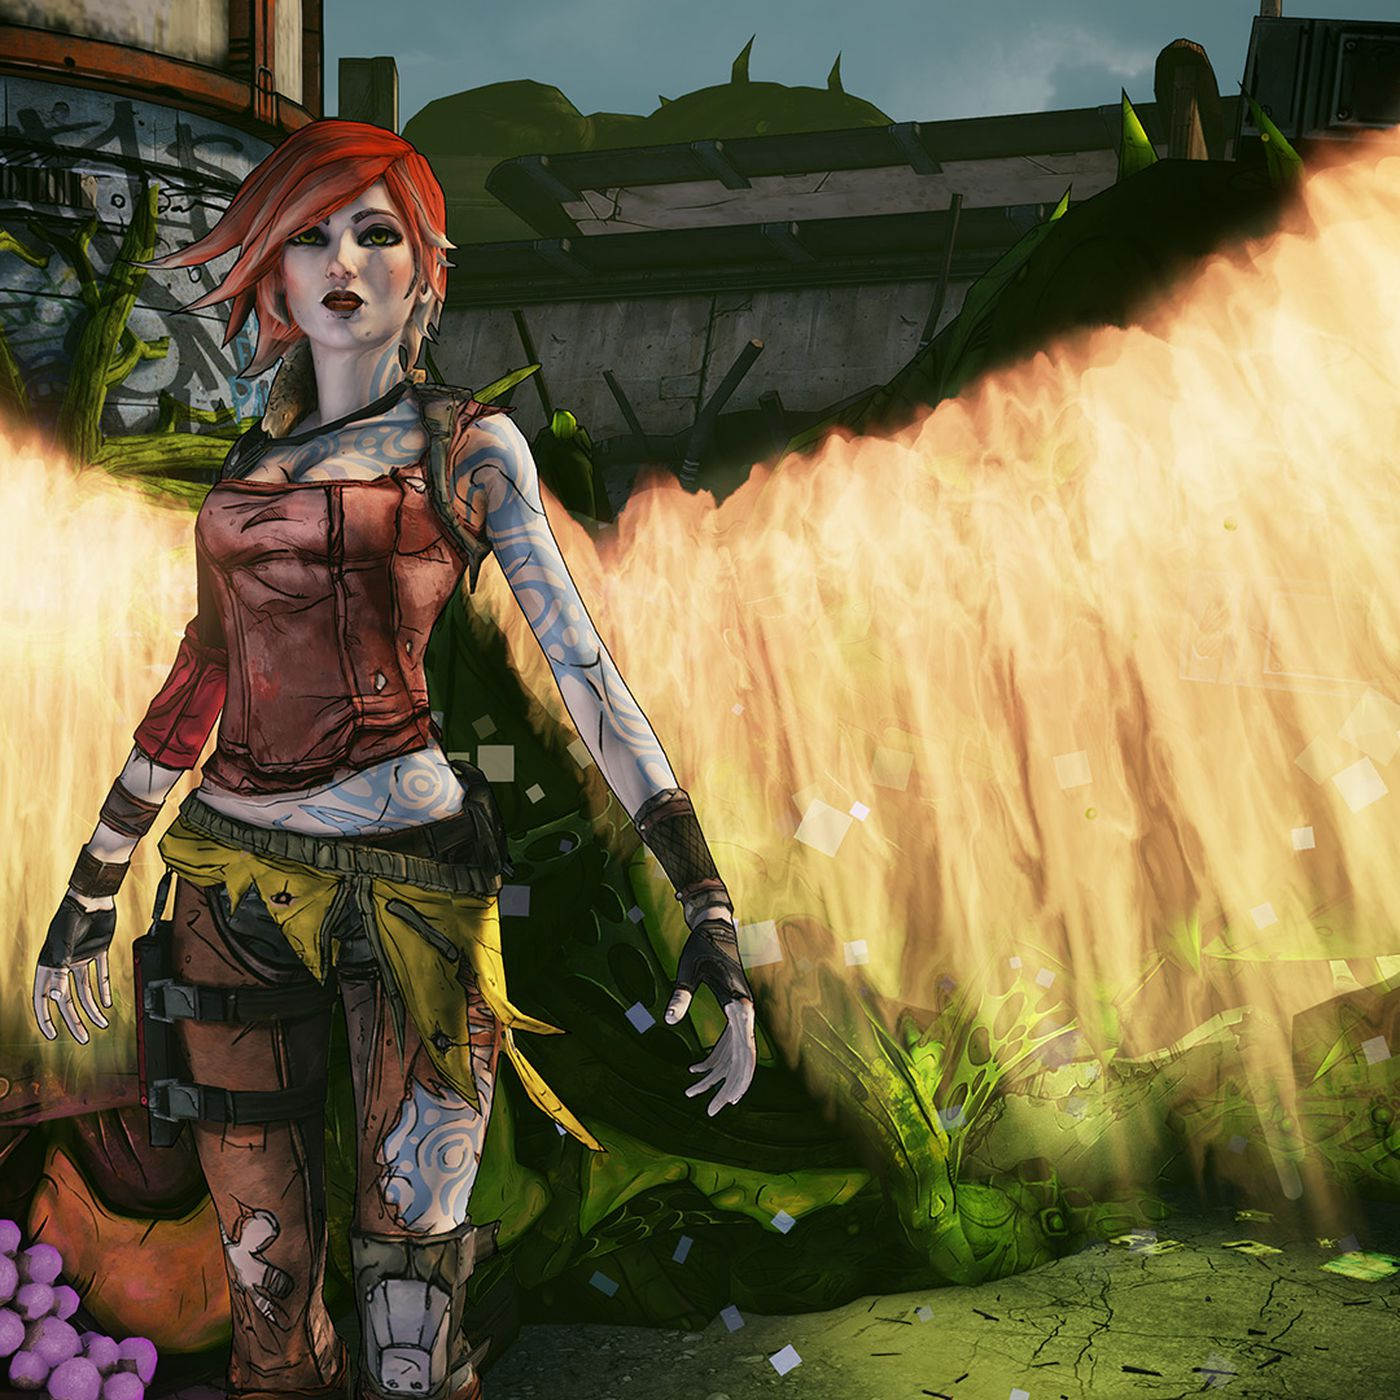 Borderlands 2 free DLC with ties to Borderlands 3 leaked via Steam